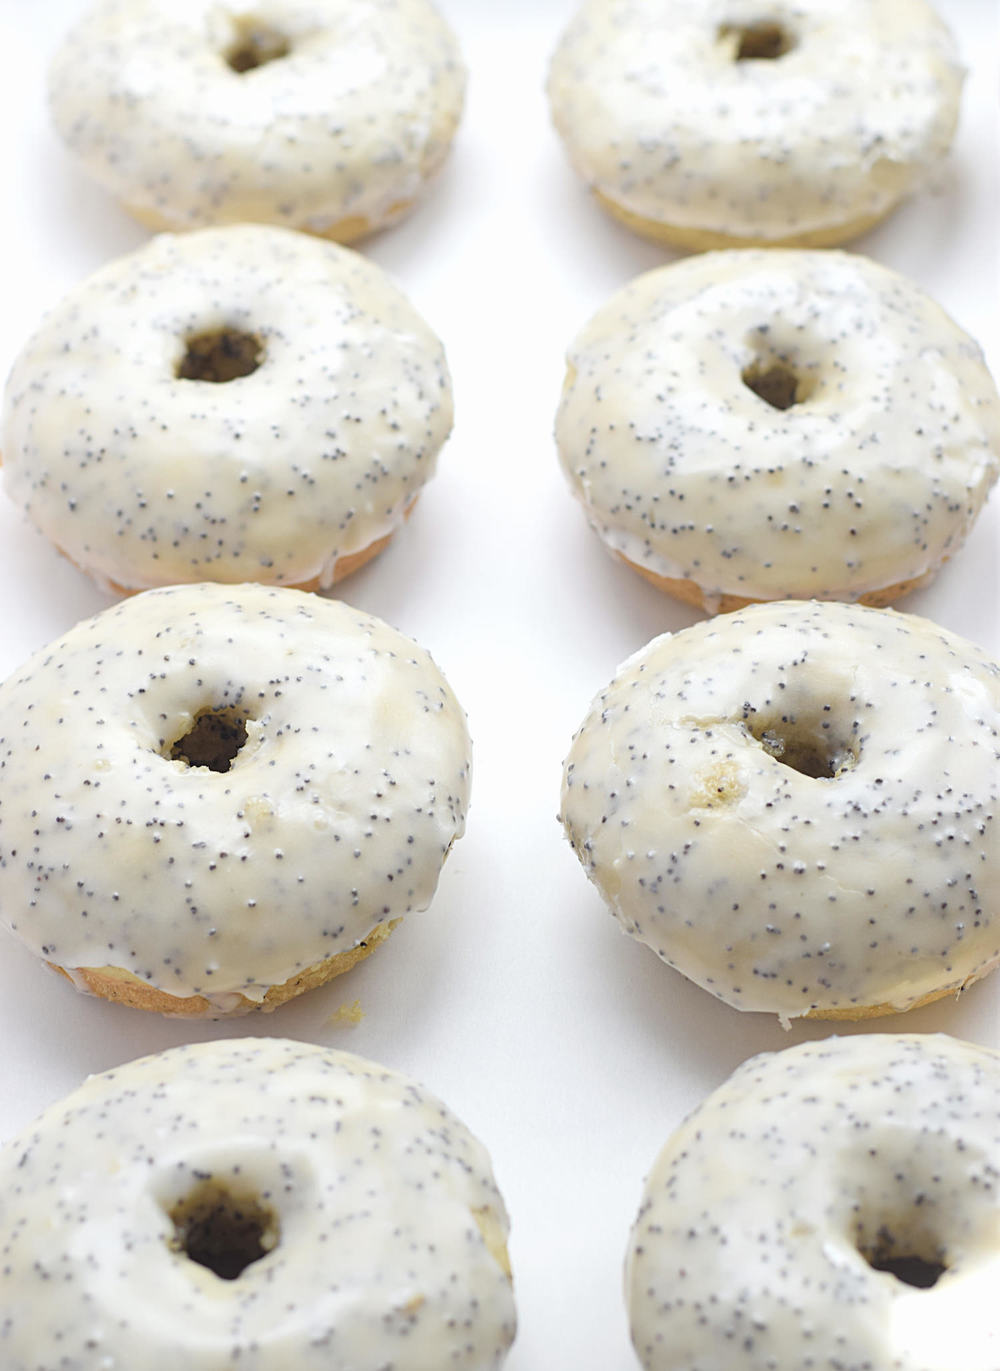 Baked Lemon Poppy Seed Donuts: soft, fluffy, super easy baked donuts full of fresh lemon flavor and studded with poppy seeds. Video included! | TrufflesandTrends.com